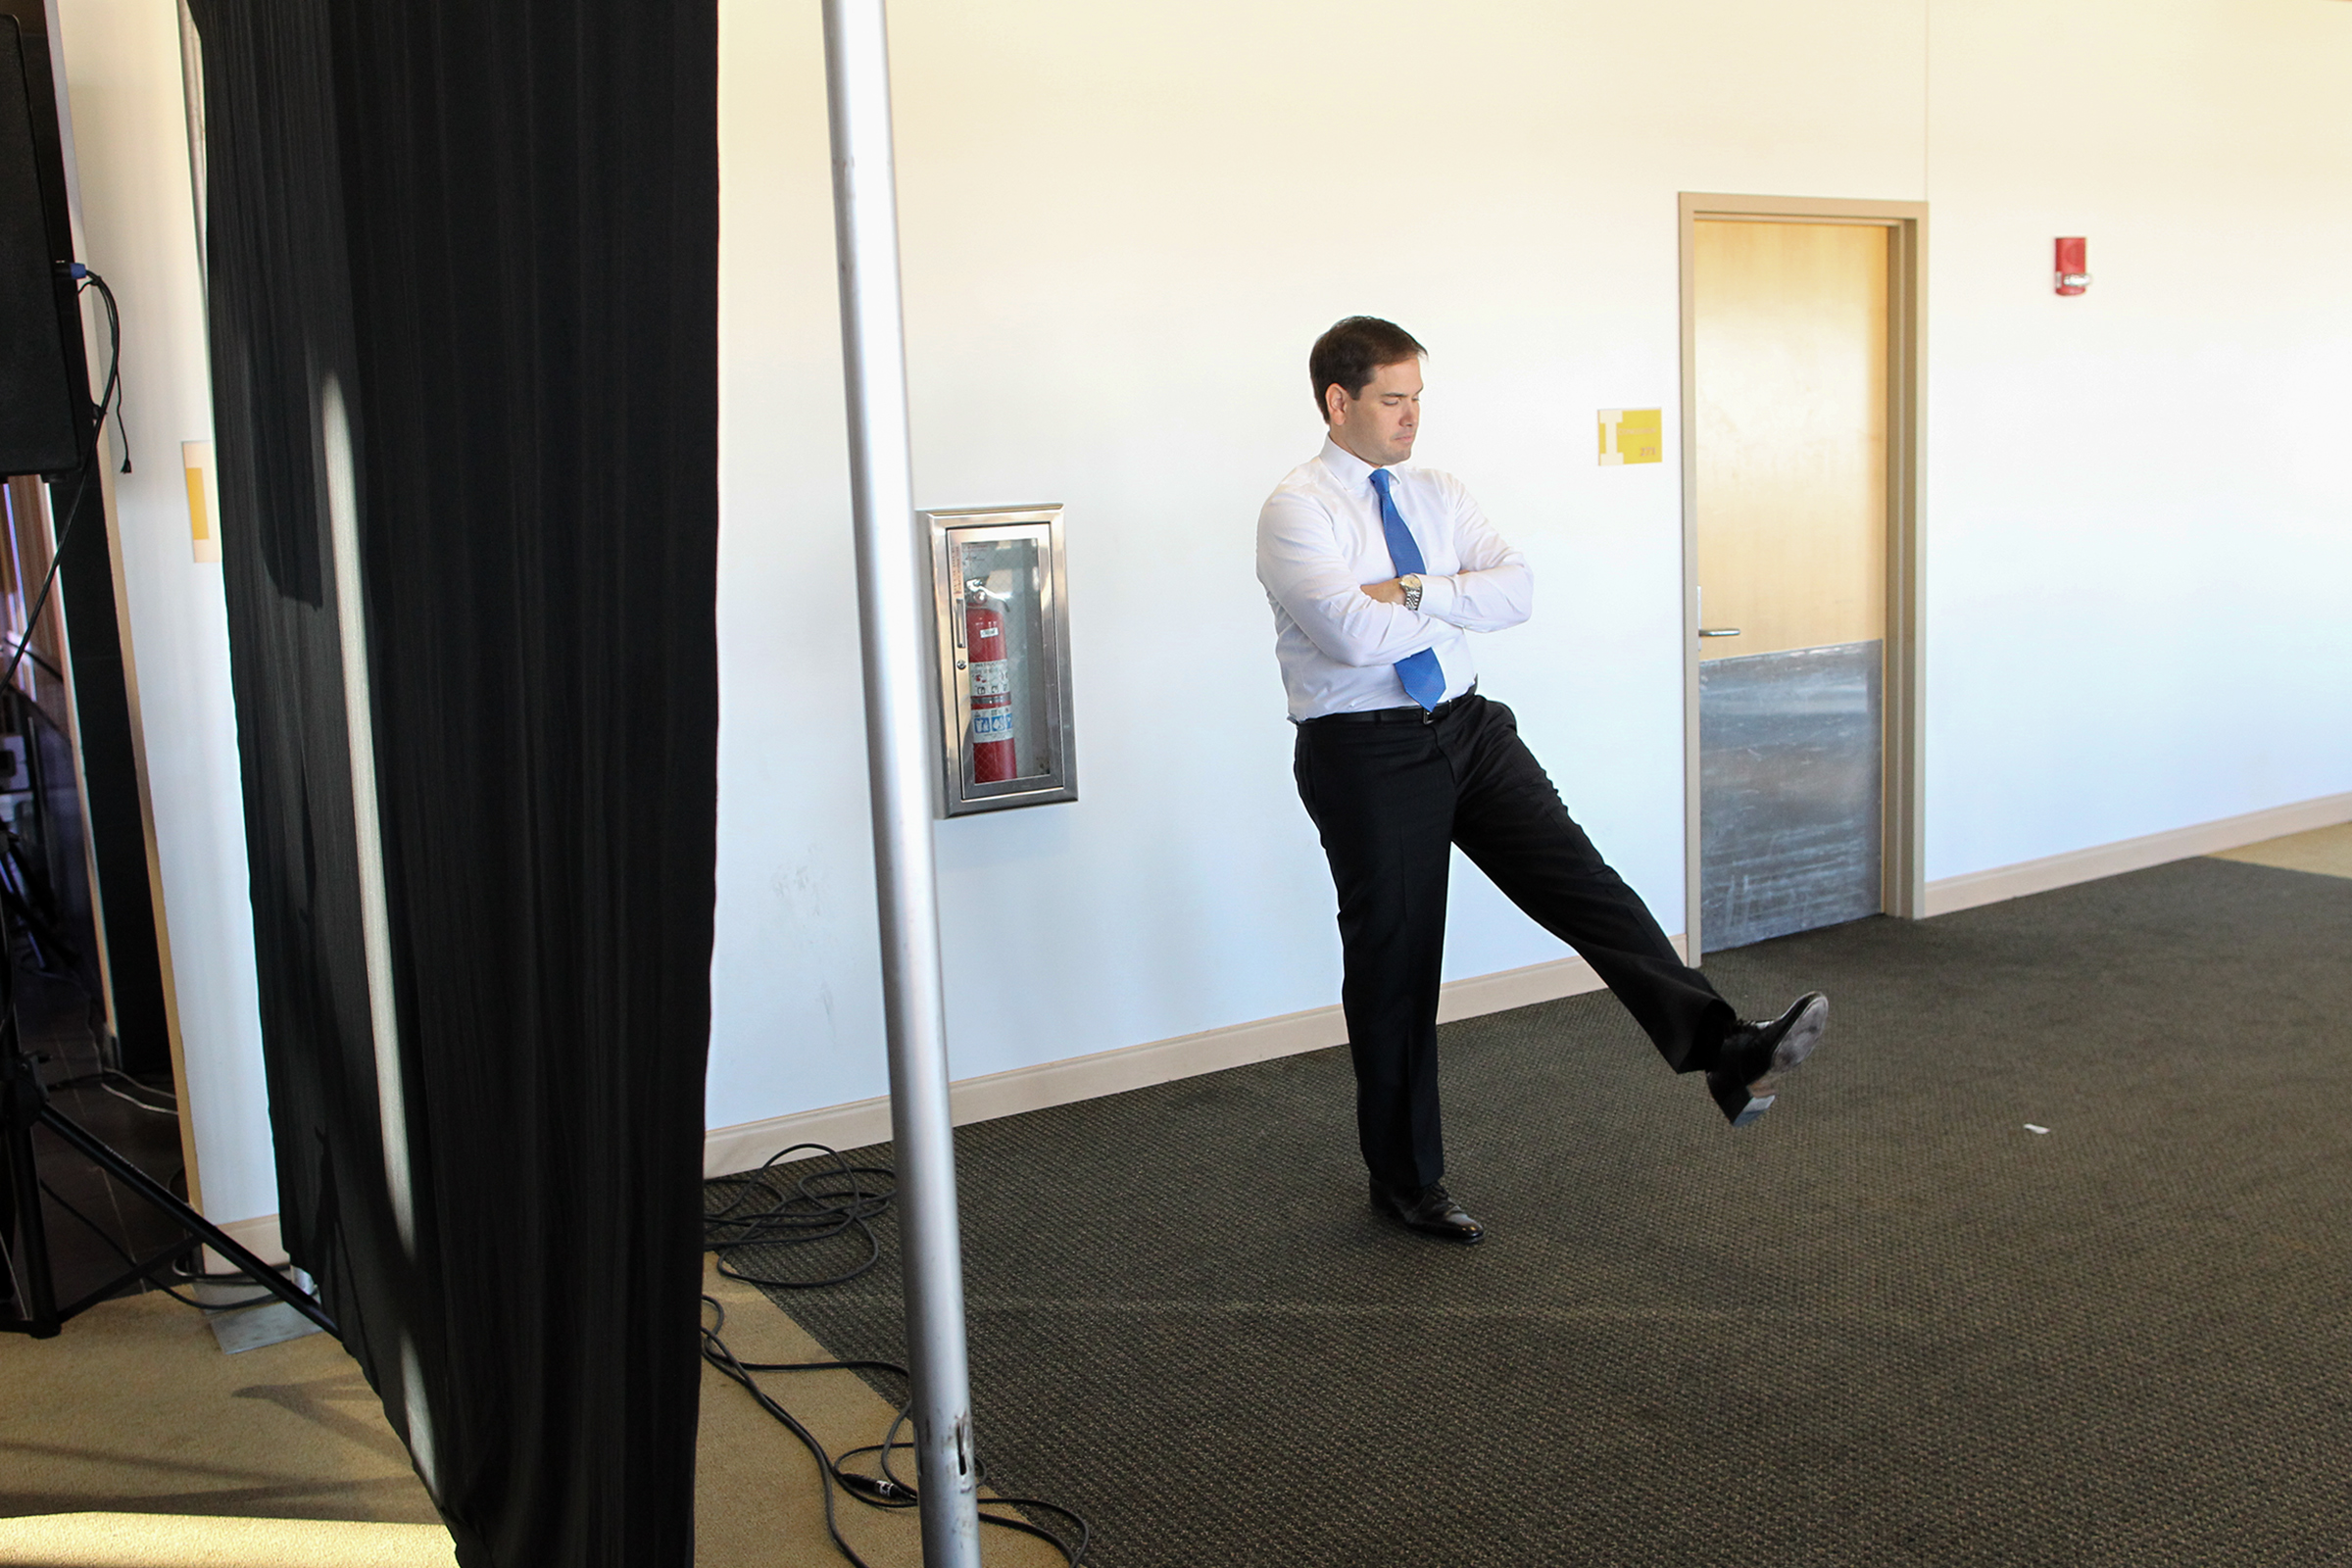 Republican presidential candidate Marco Rubio waits to be introduced to guests at Kinnick Stadium.